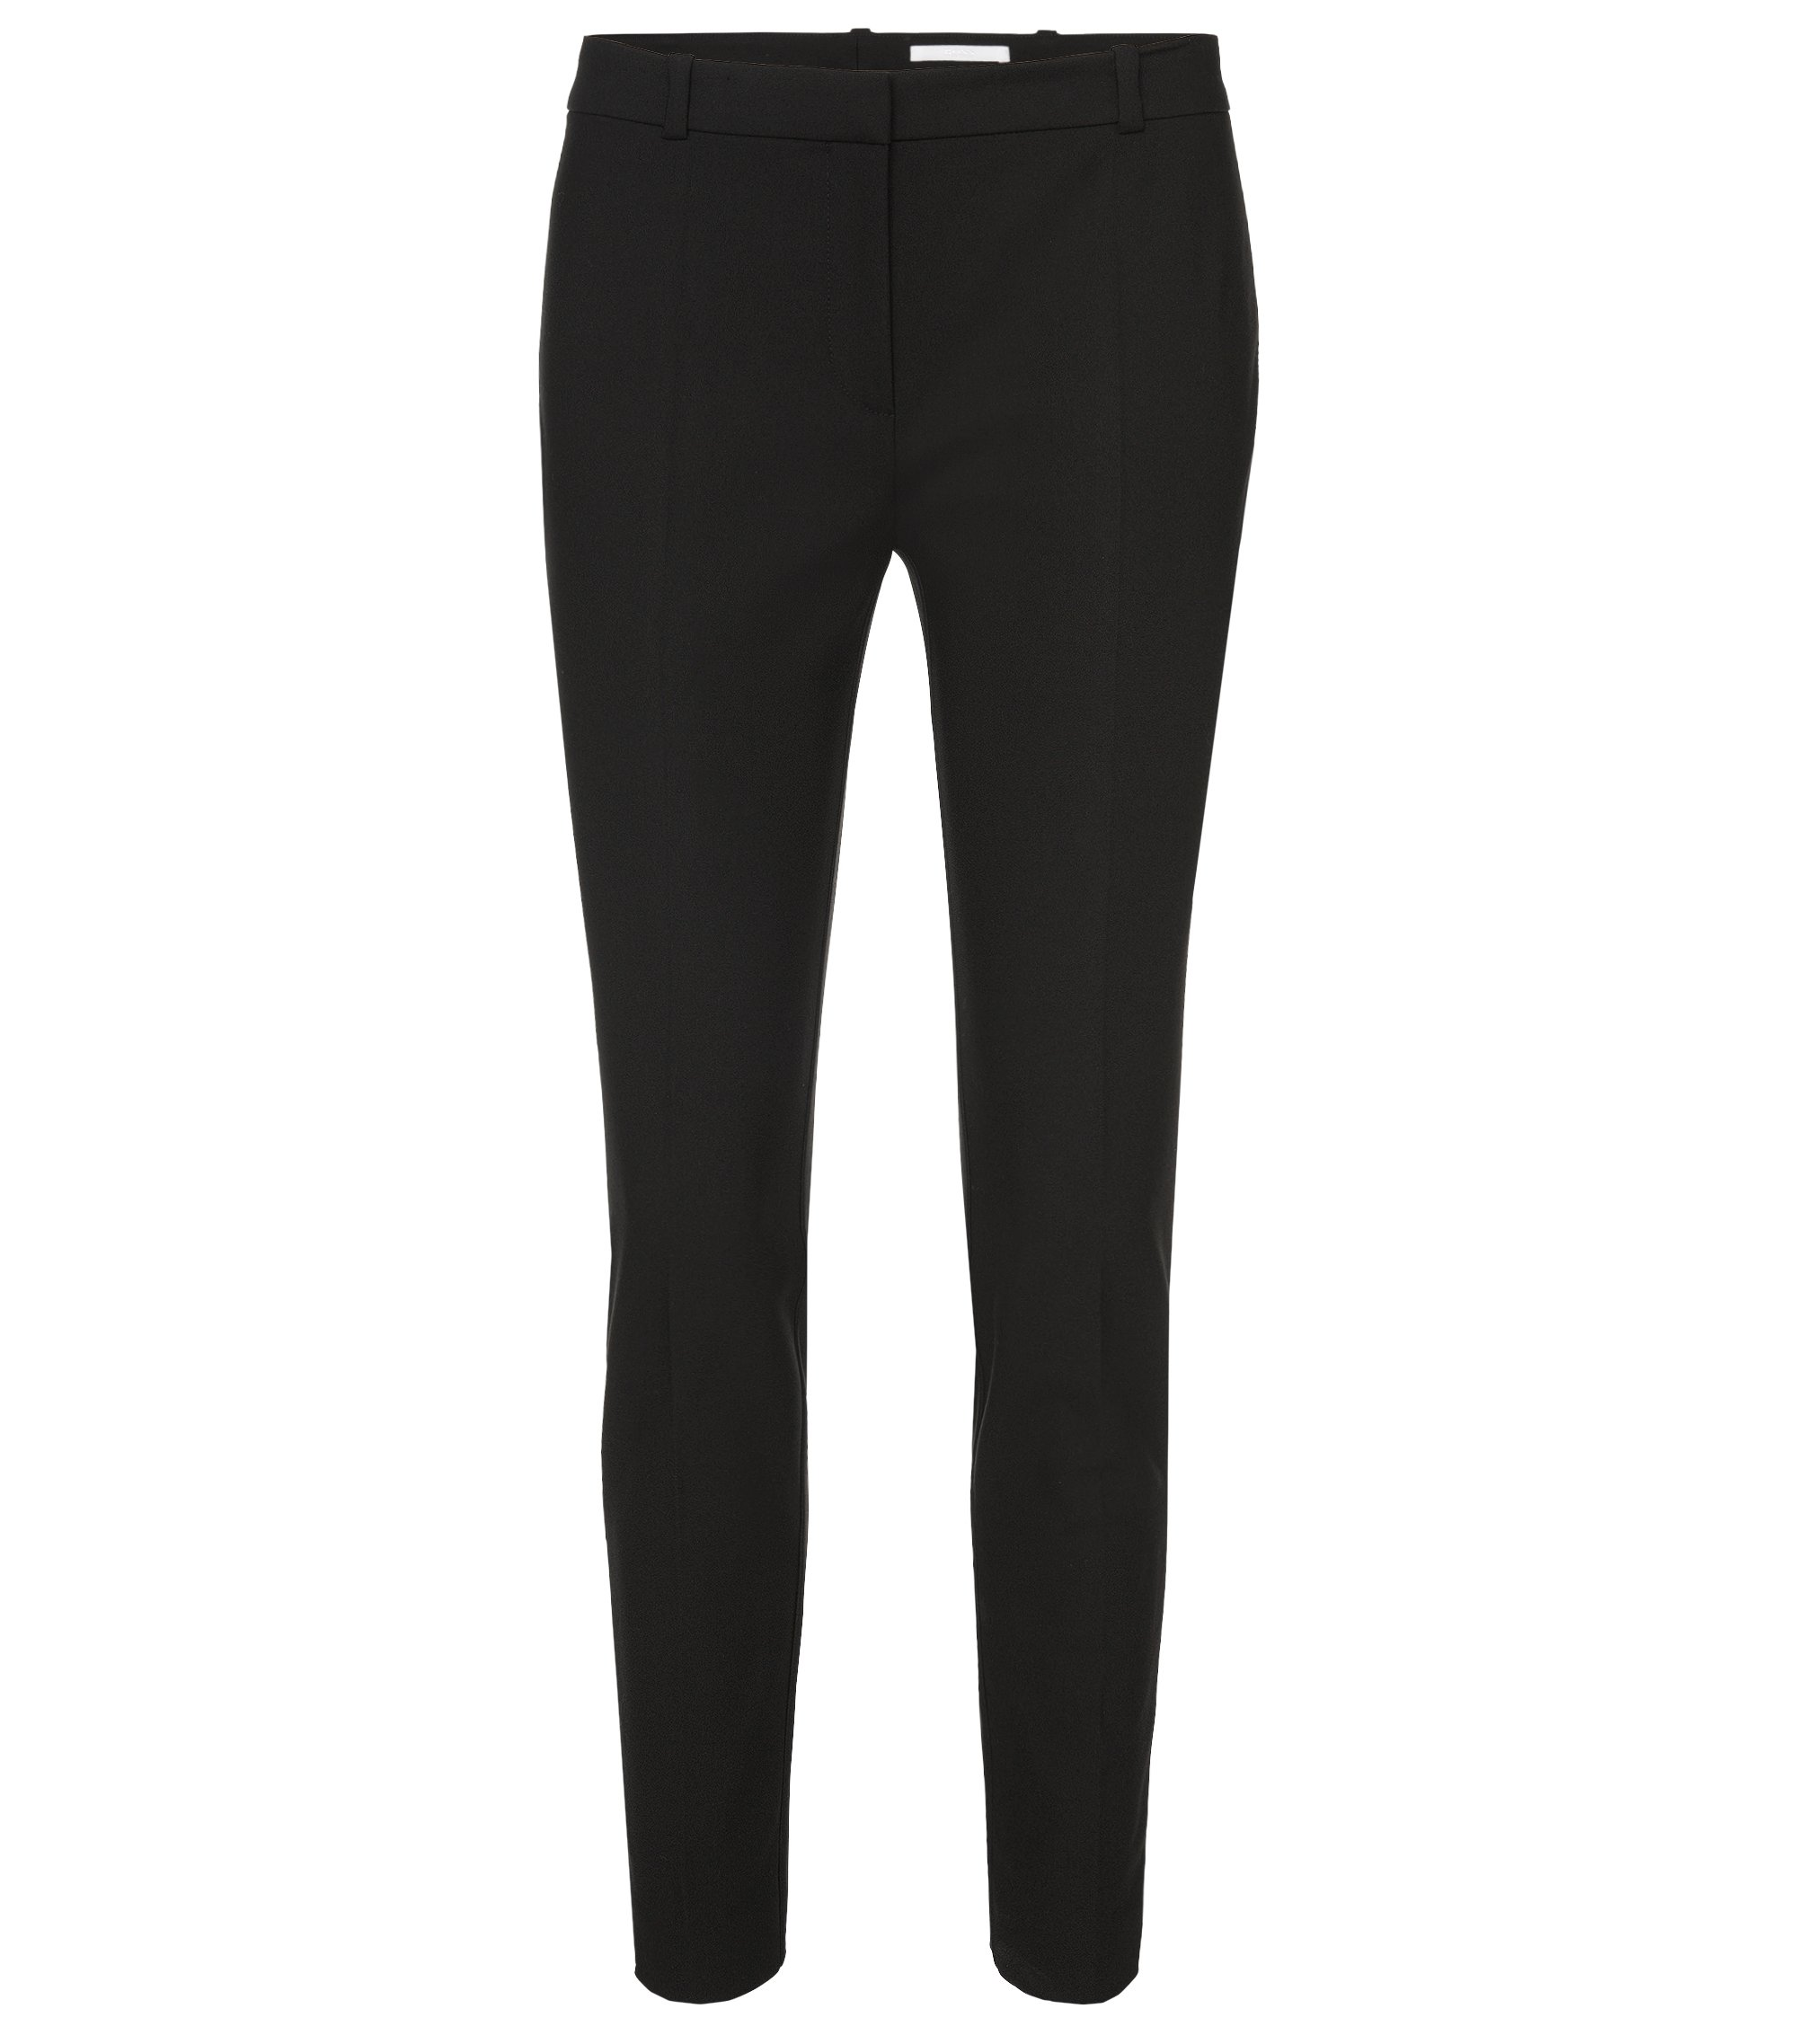 Pantalon Regular Fit en coton stretch mélangé, Noir